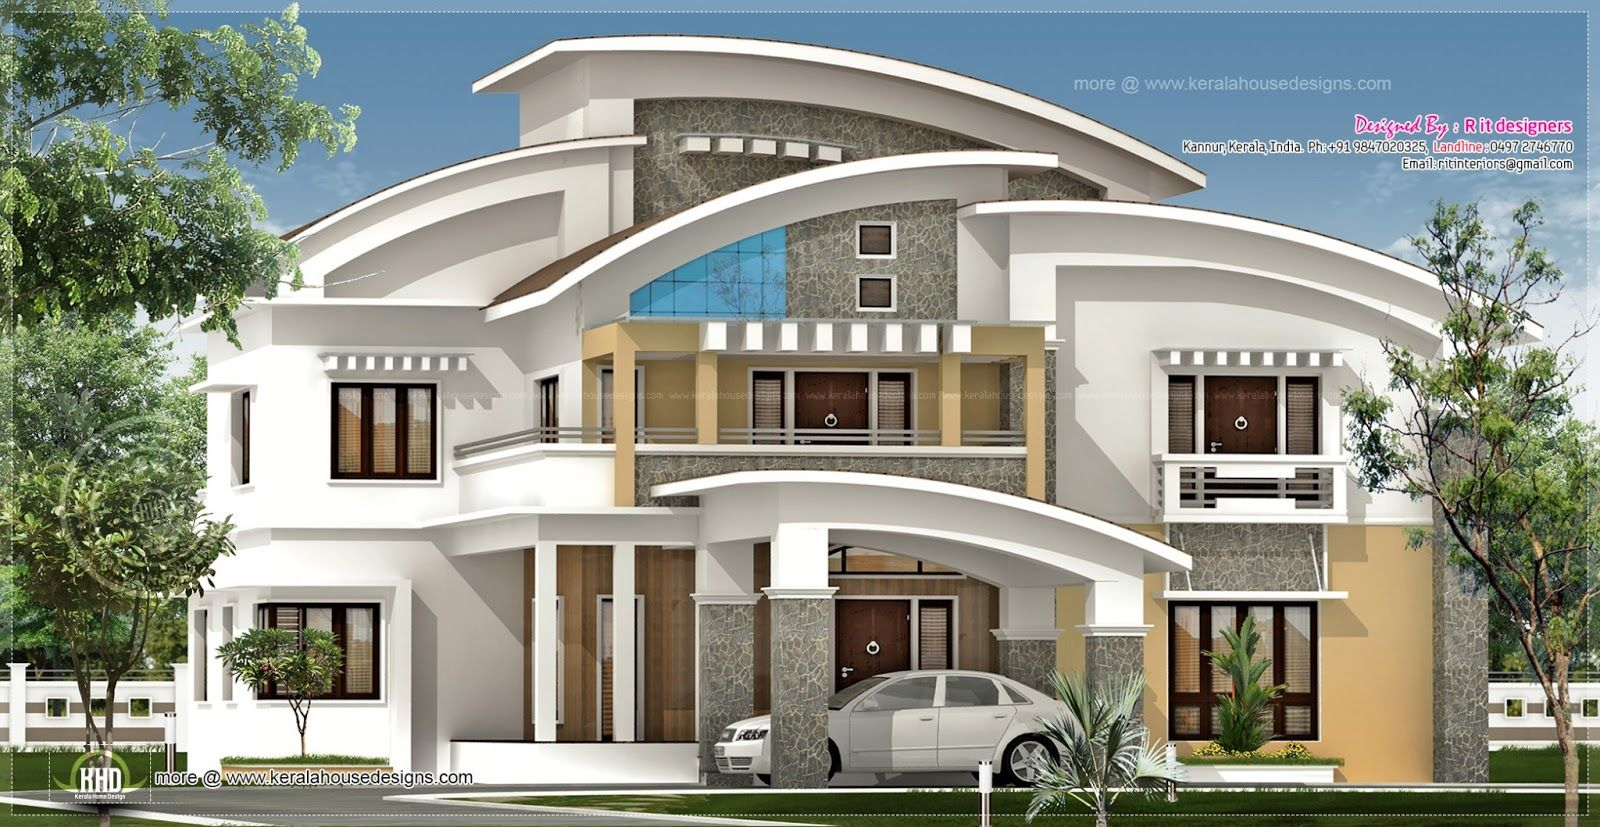 Awesome luxury homes plans 8 french country luxury home Luxury homes blueprints